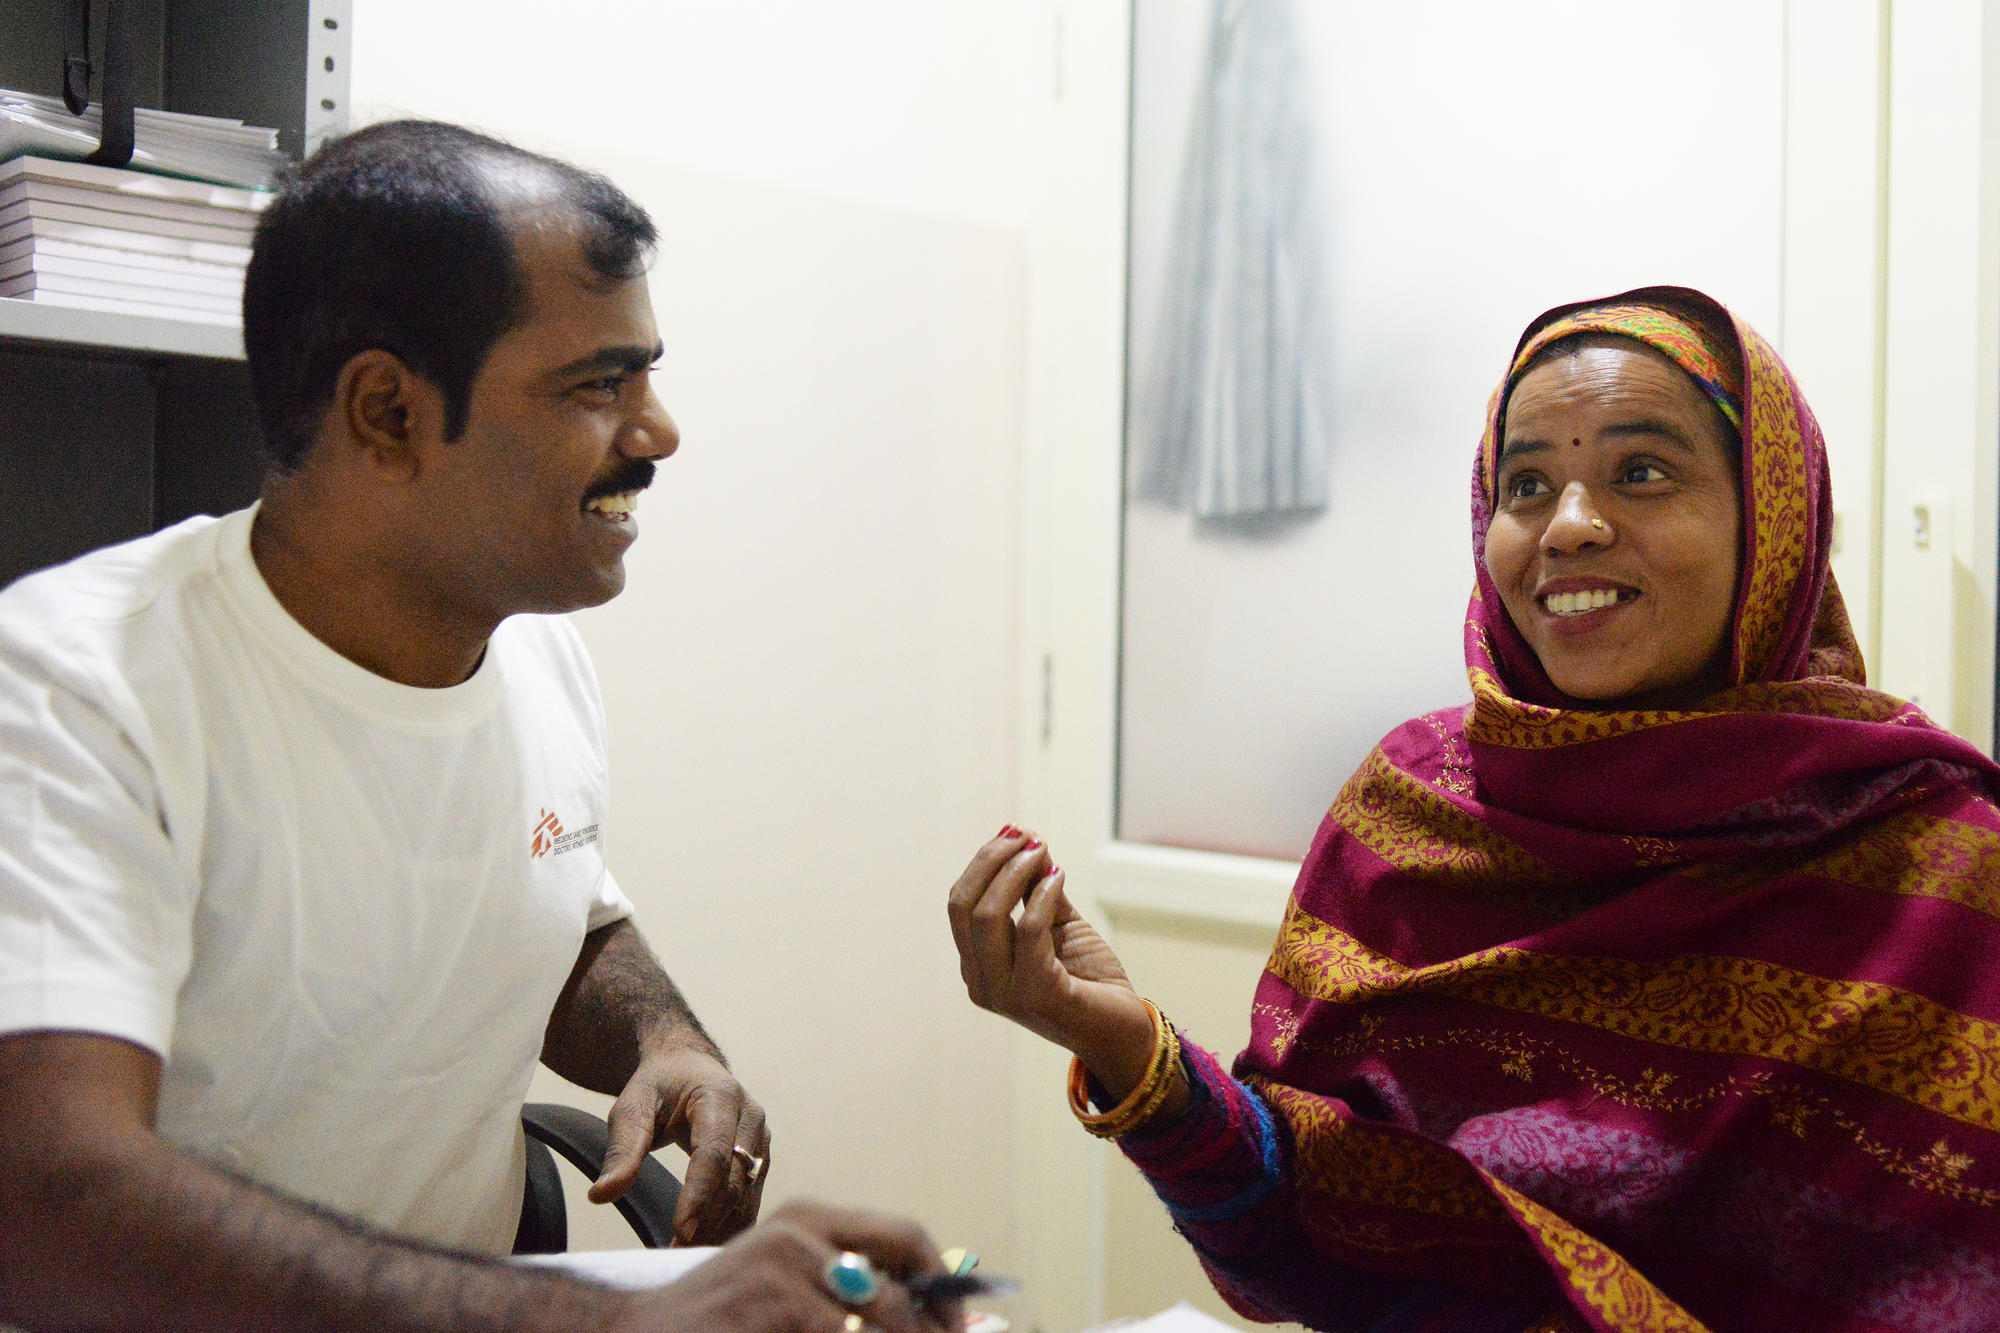 Geeta, a hepatitis C patient at the MSF project in Meerut, reacts as she's informed that she was now cured of the disease